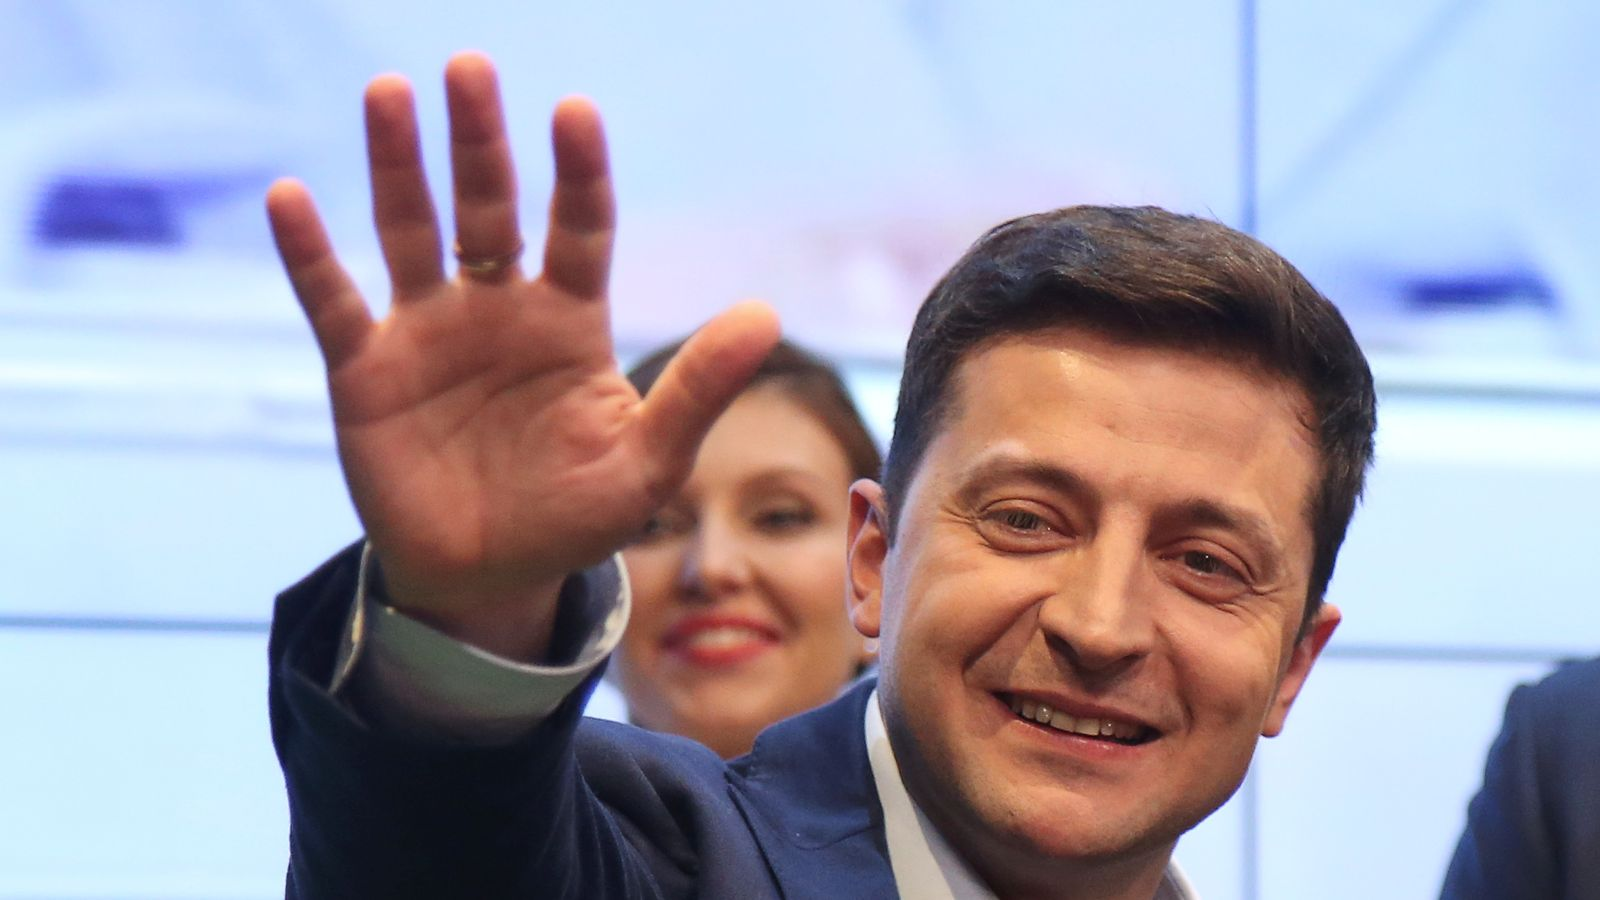 Comedian wins Ukraine presidential election - exit poll